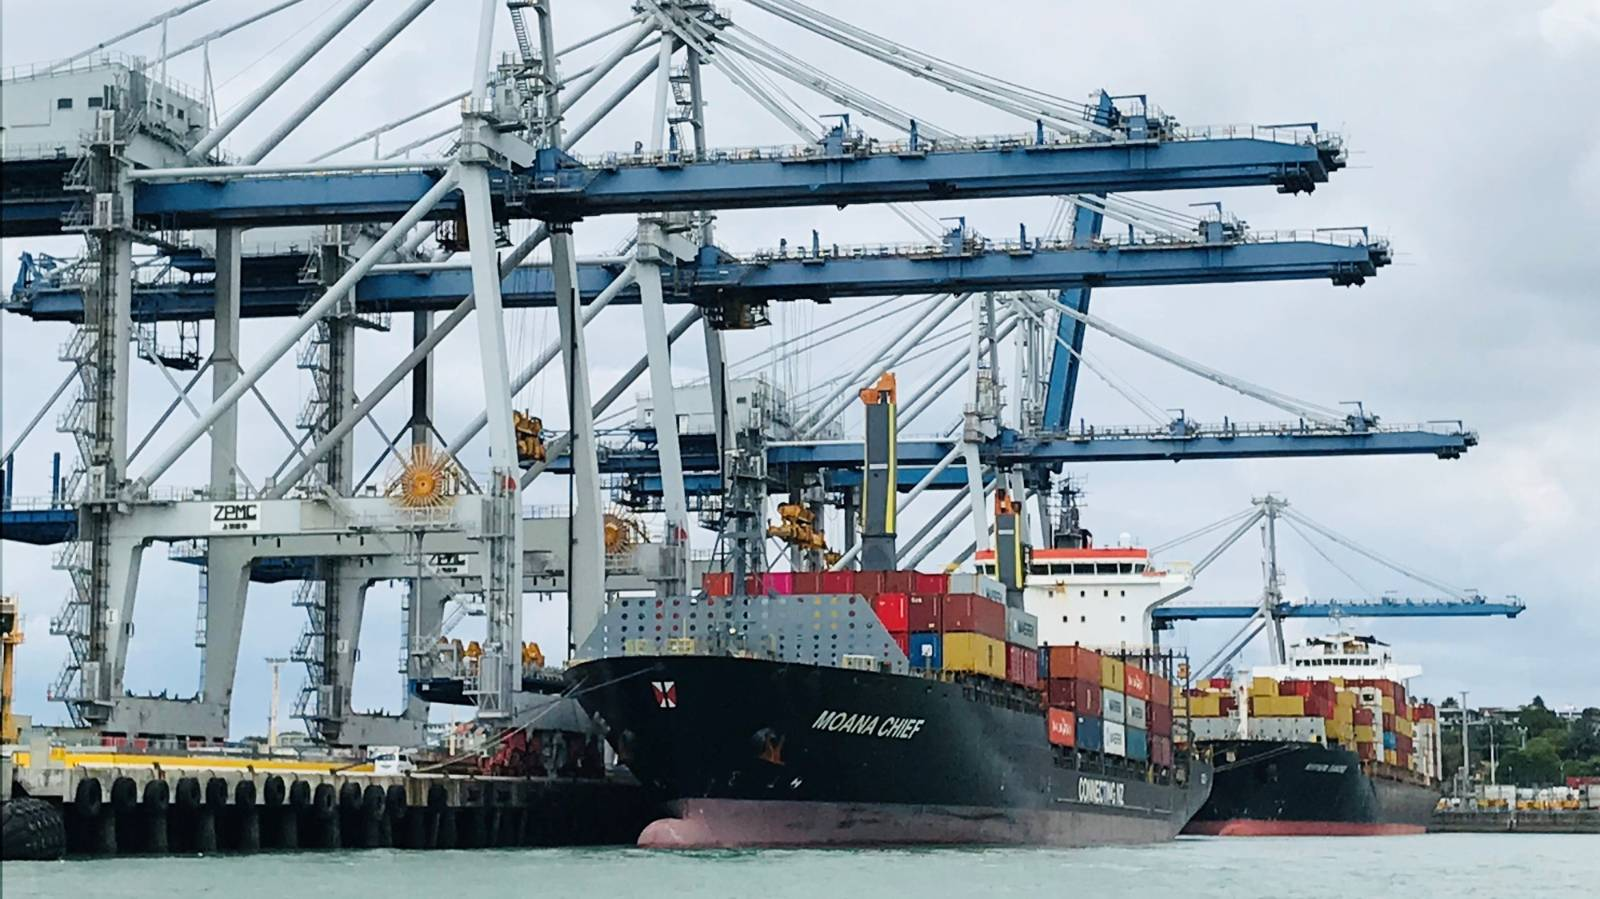 Major shipping issues could get worse